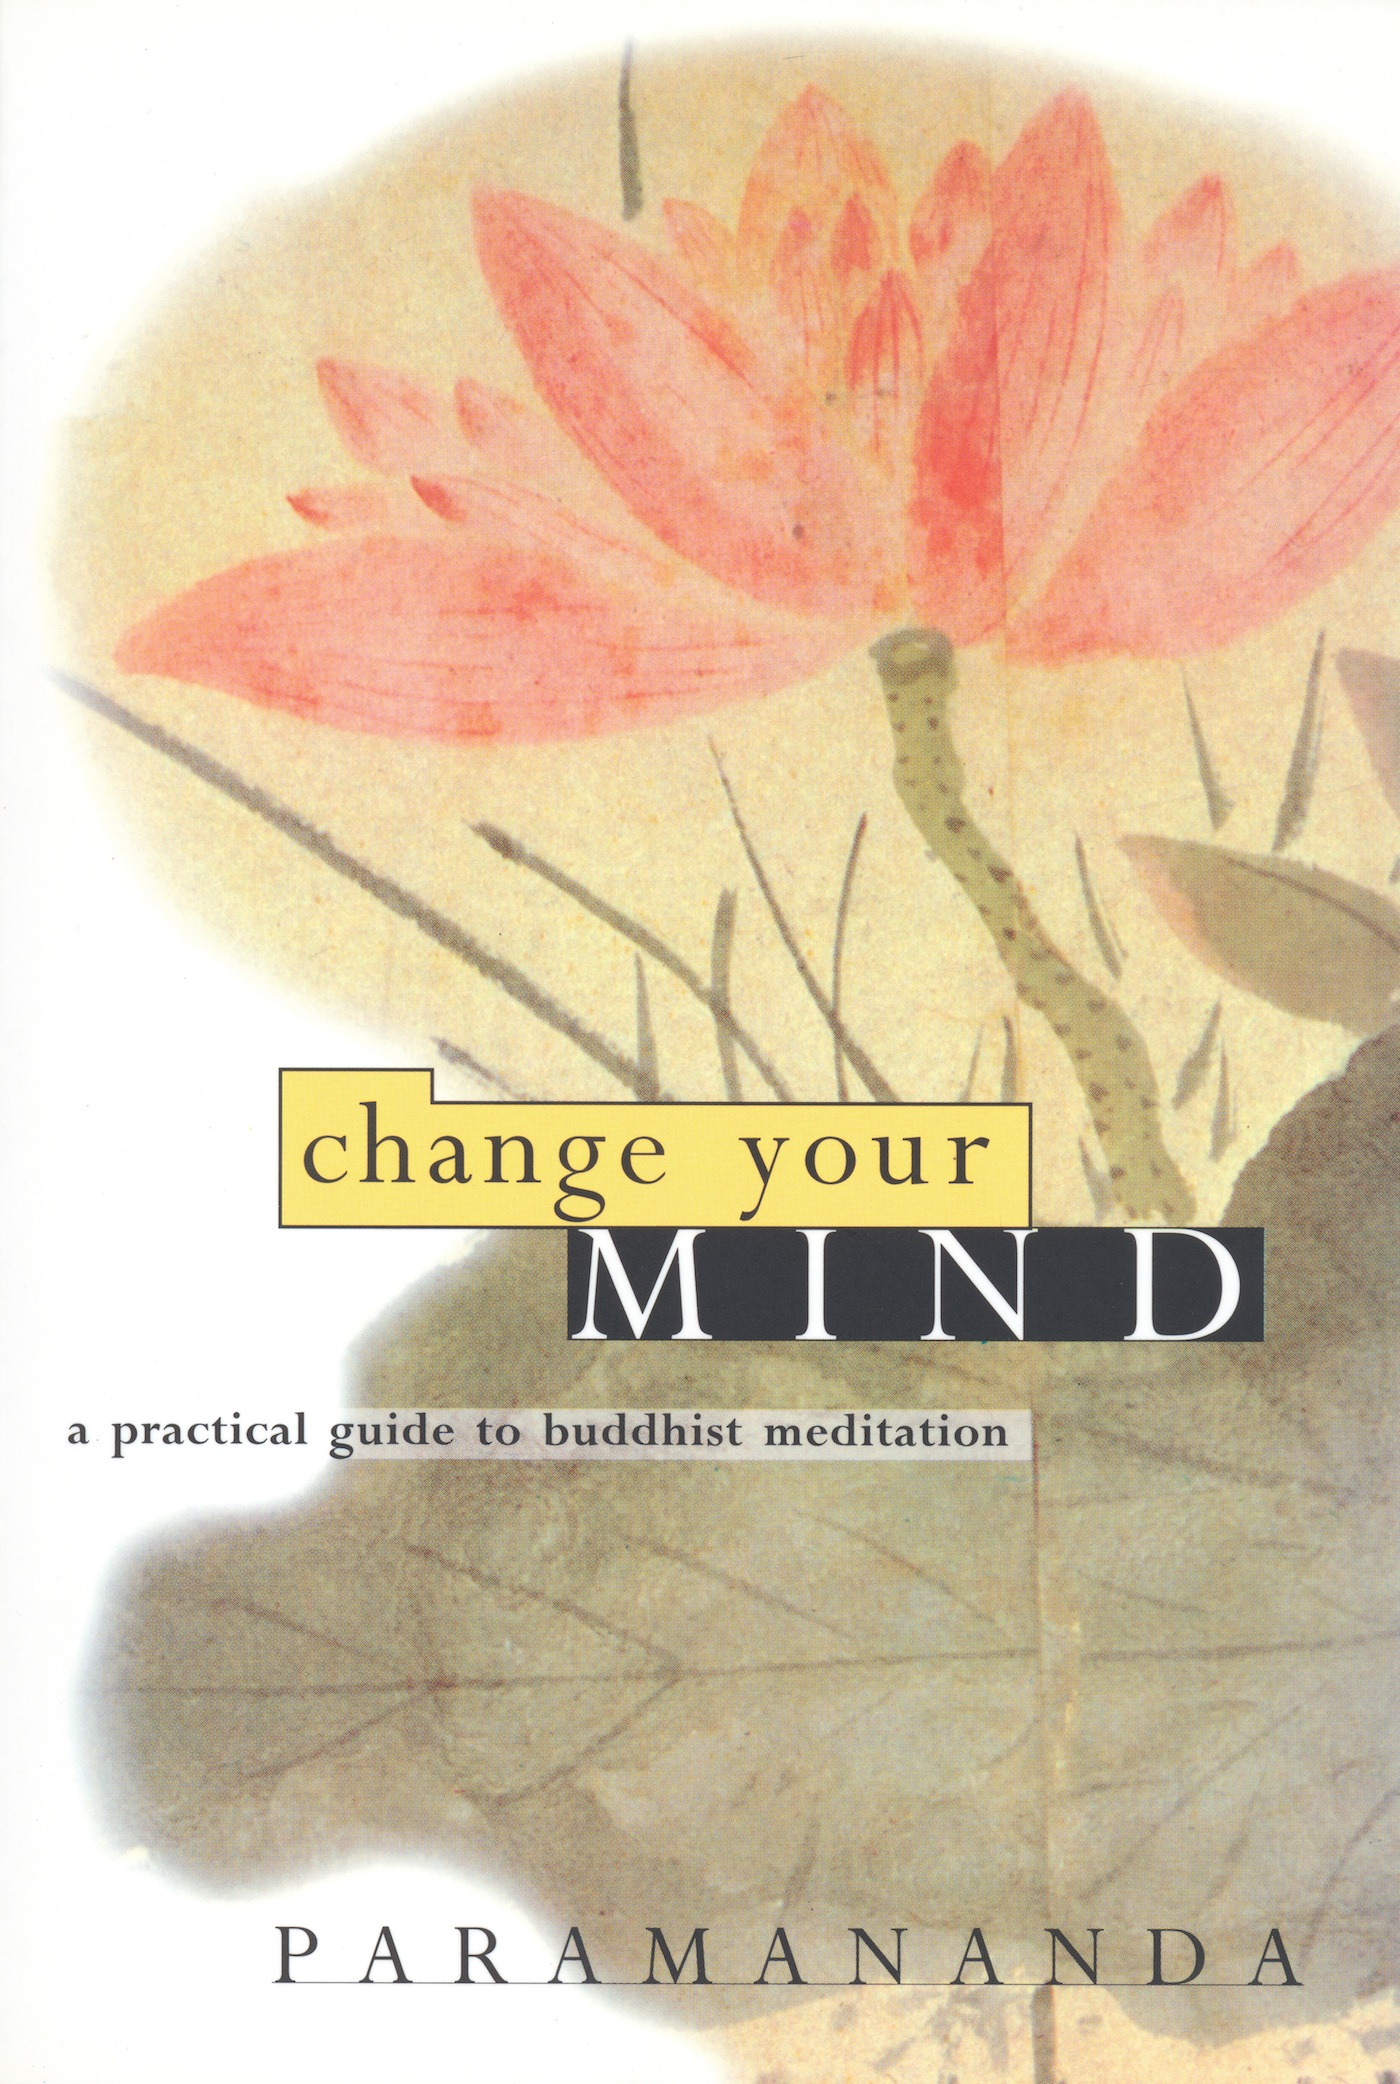 Change Your Mind: A Practical Guide to Buddhist Meditation By: Paramananda